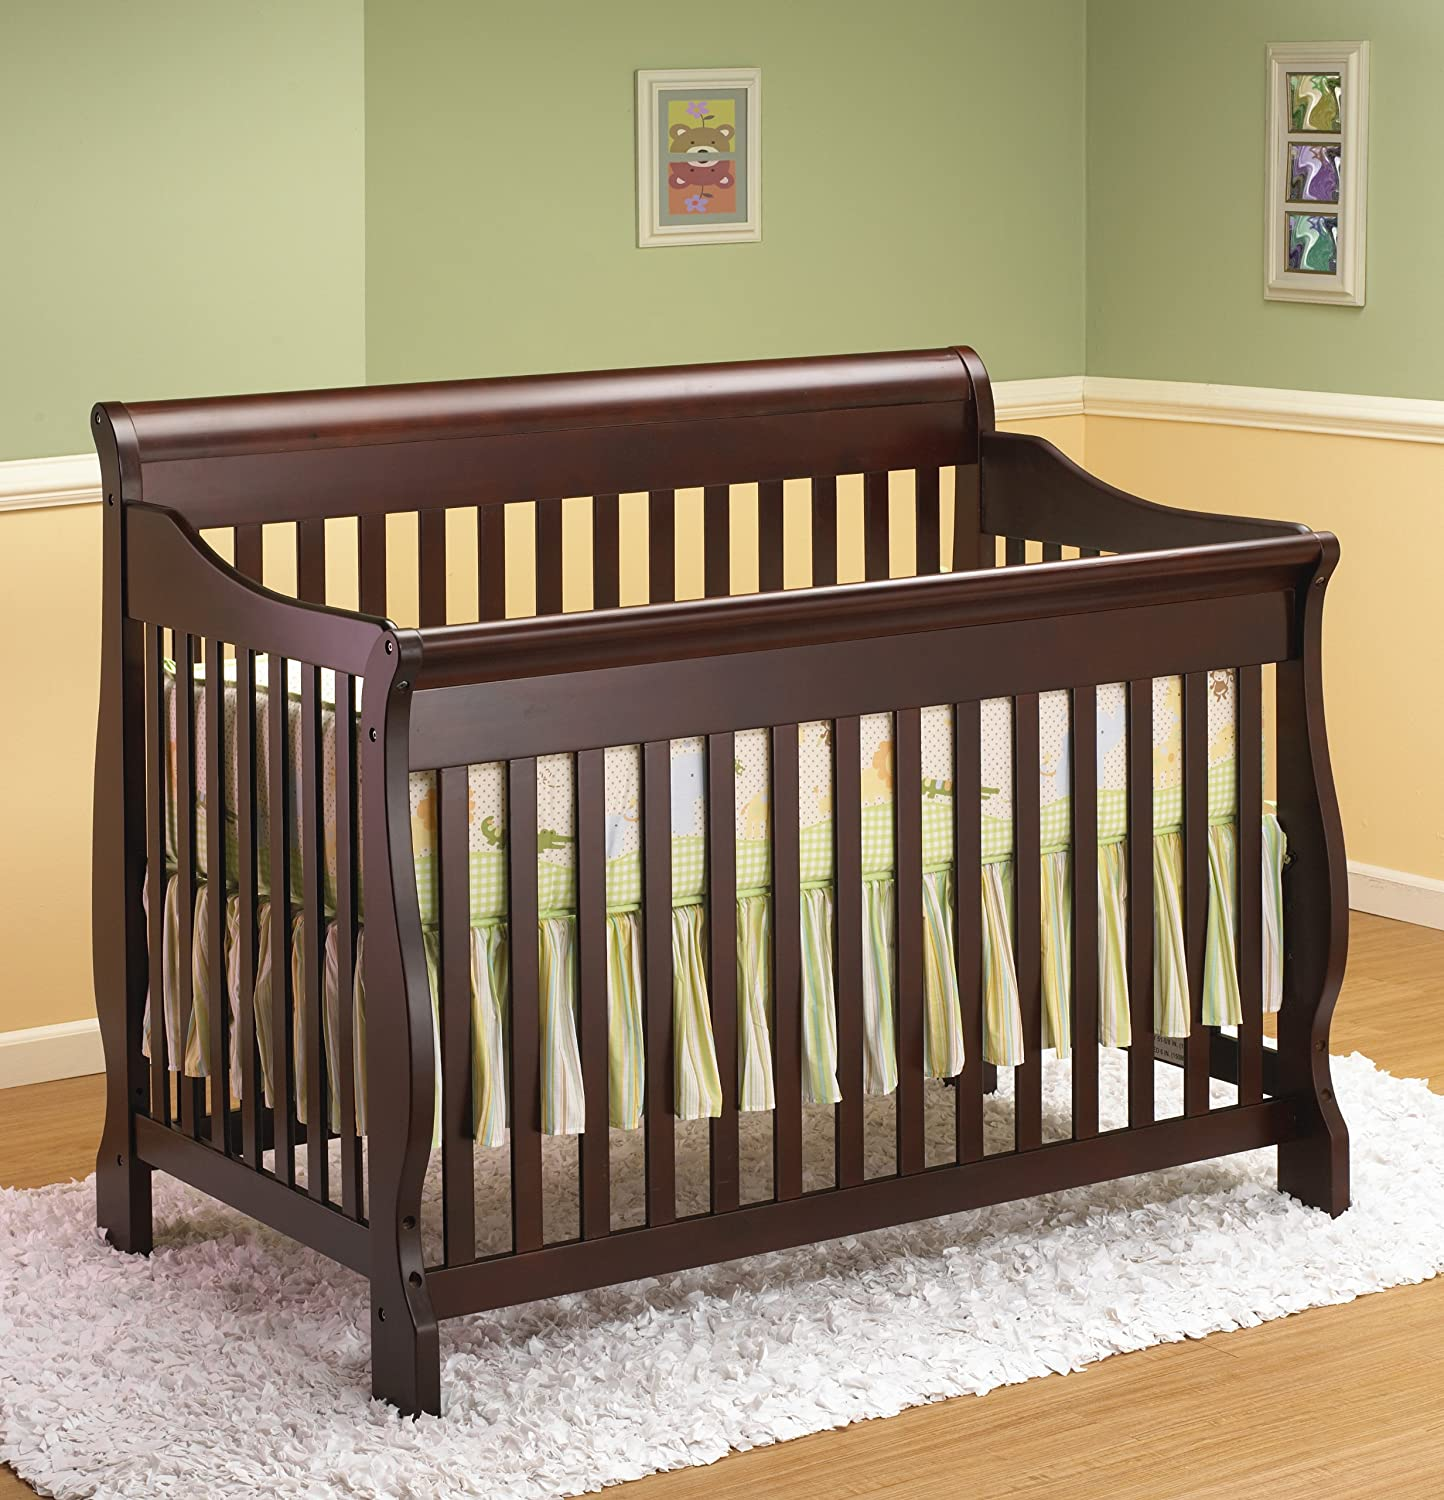 - Amazon.com : Sleigh Crib 4 In 1 From Orbelle Lifestyle In Cherry